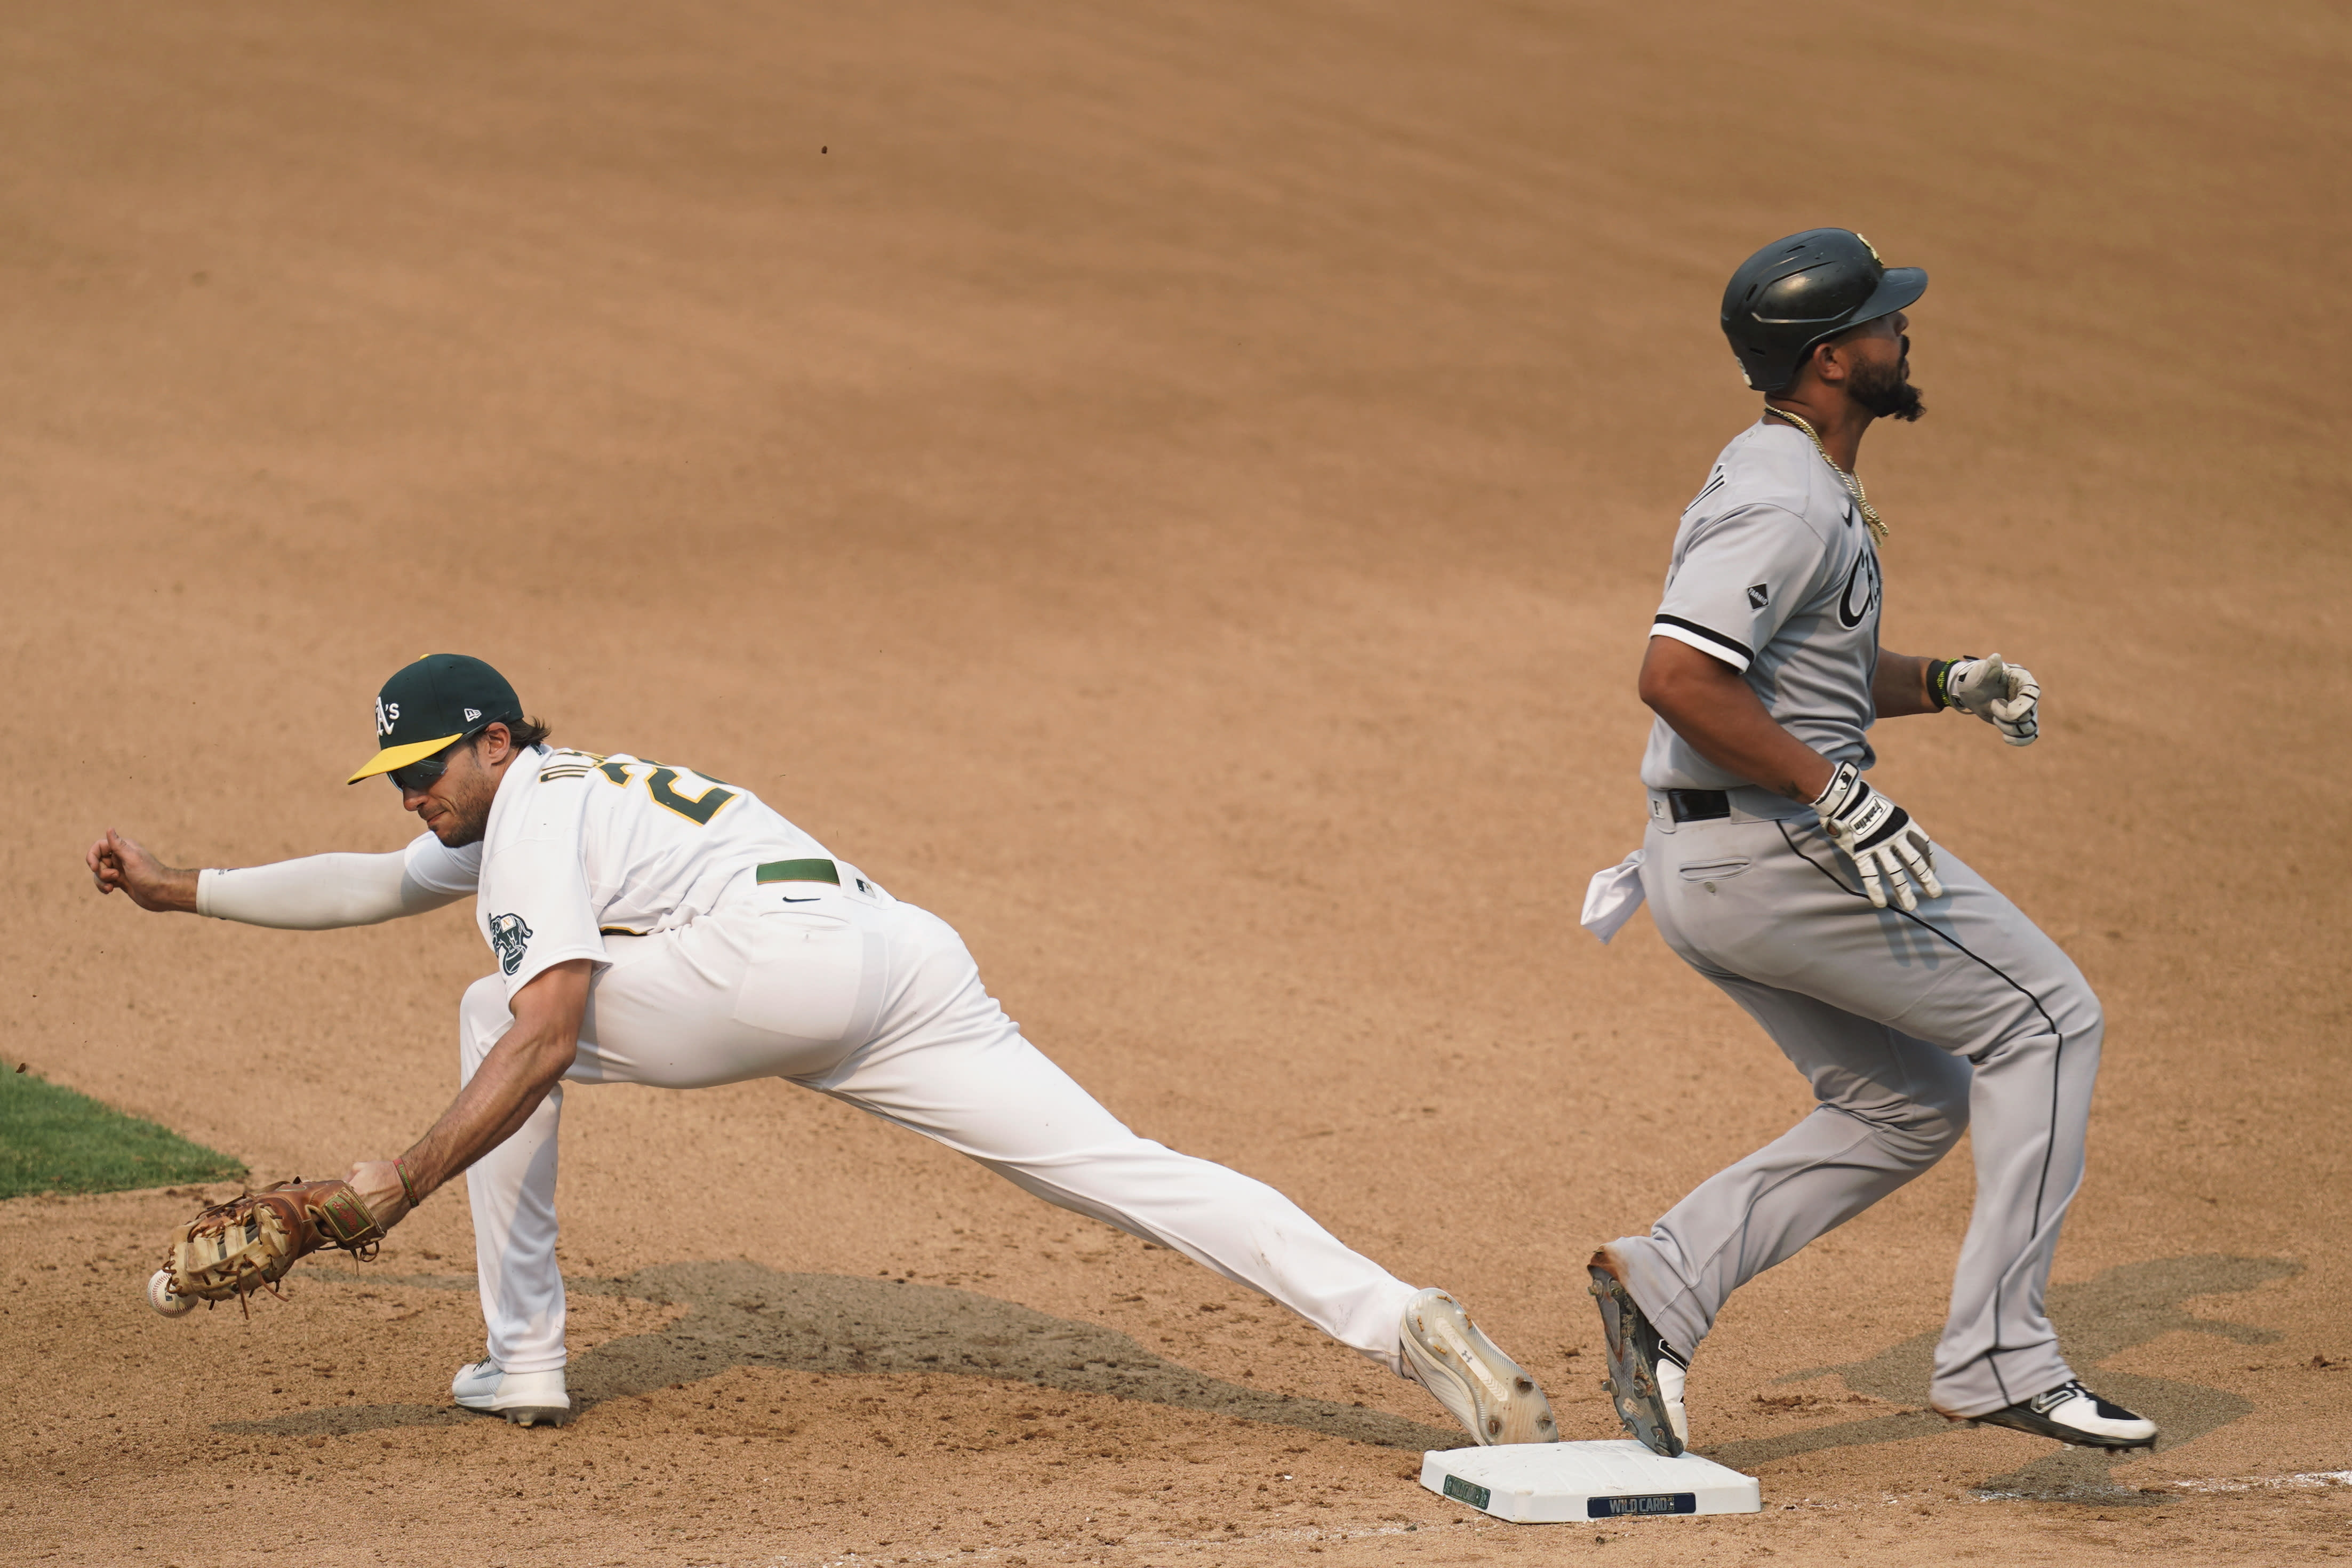 Chicago White Sox's Jose Abreu, right, reaches first as Oakland Athletics first baseman Matt Olson drops the ball on a throwing error by shortstop Marcus Semien during the seventh inning of Game 3 of an American League wild-card baseball series Thursday, Oct. 1, 2020, in Oakland, Calif. (AP Photo/Eric Risberg)